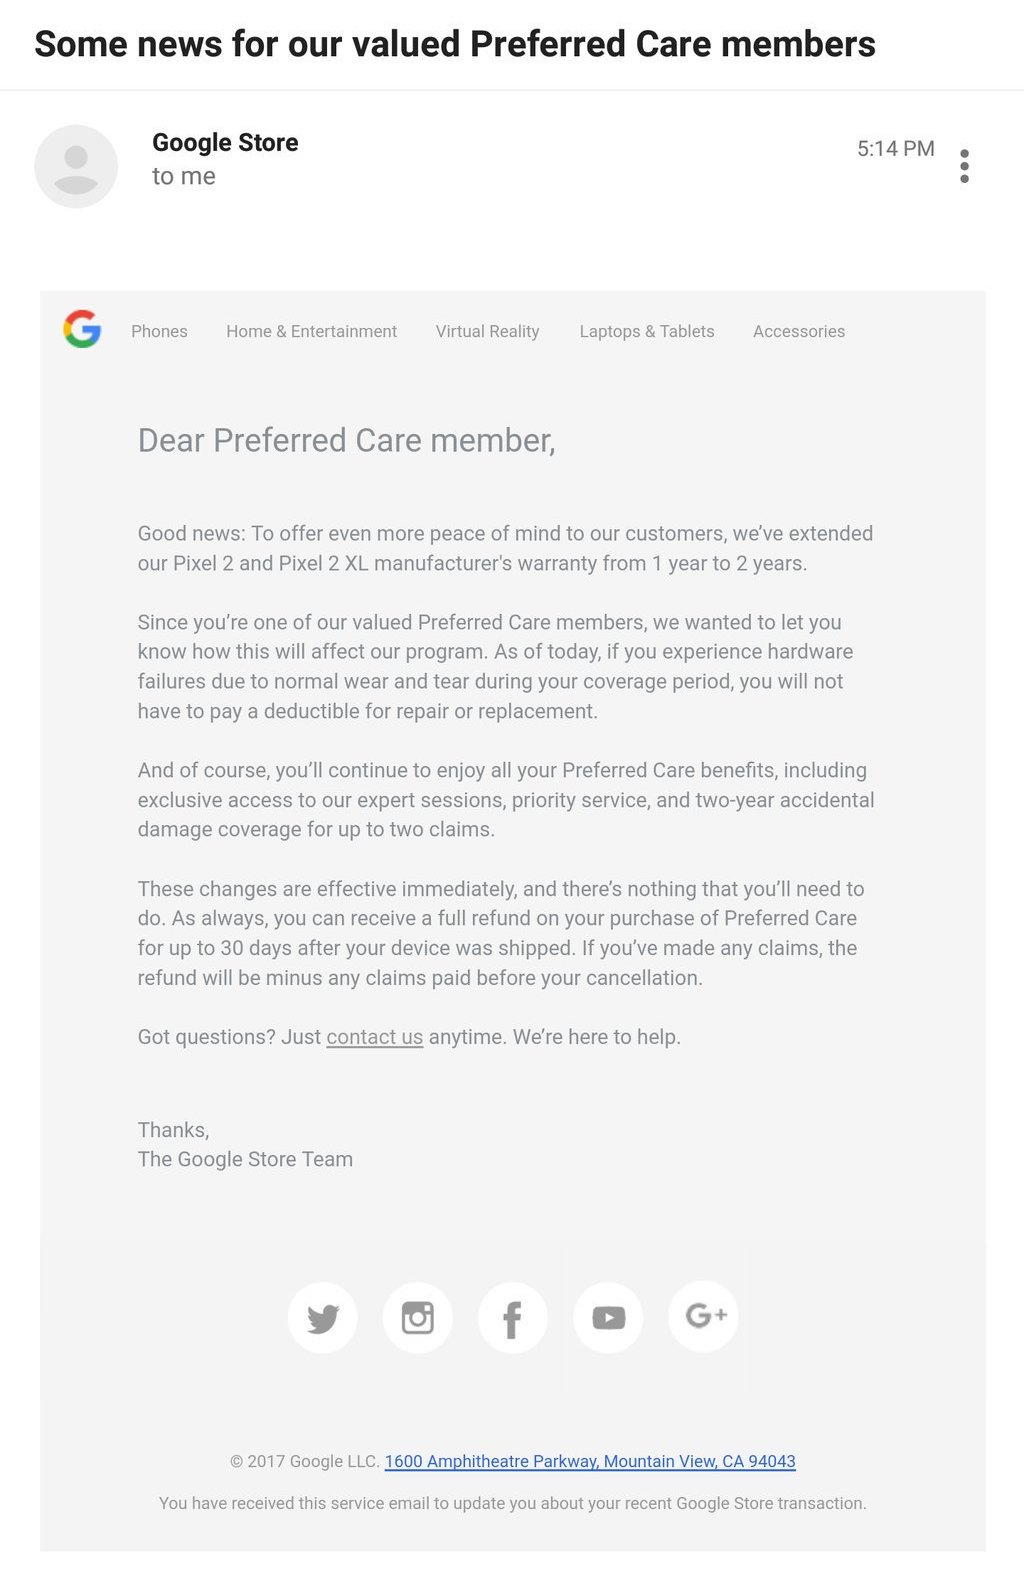 Google removes Preferred Care deductible for the Pixel 2 and